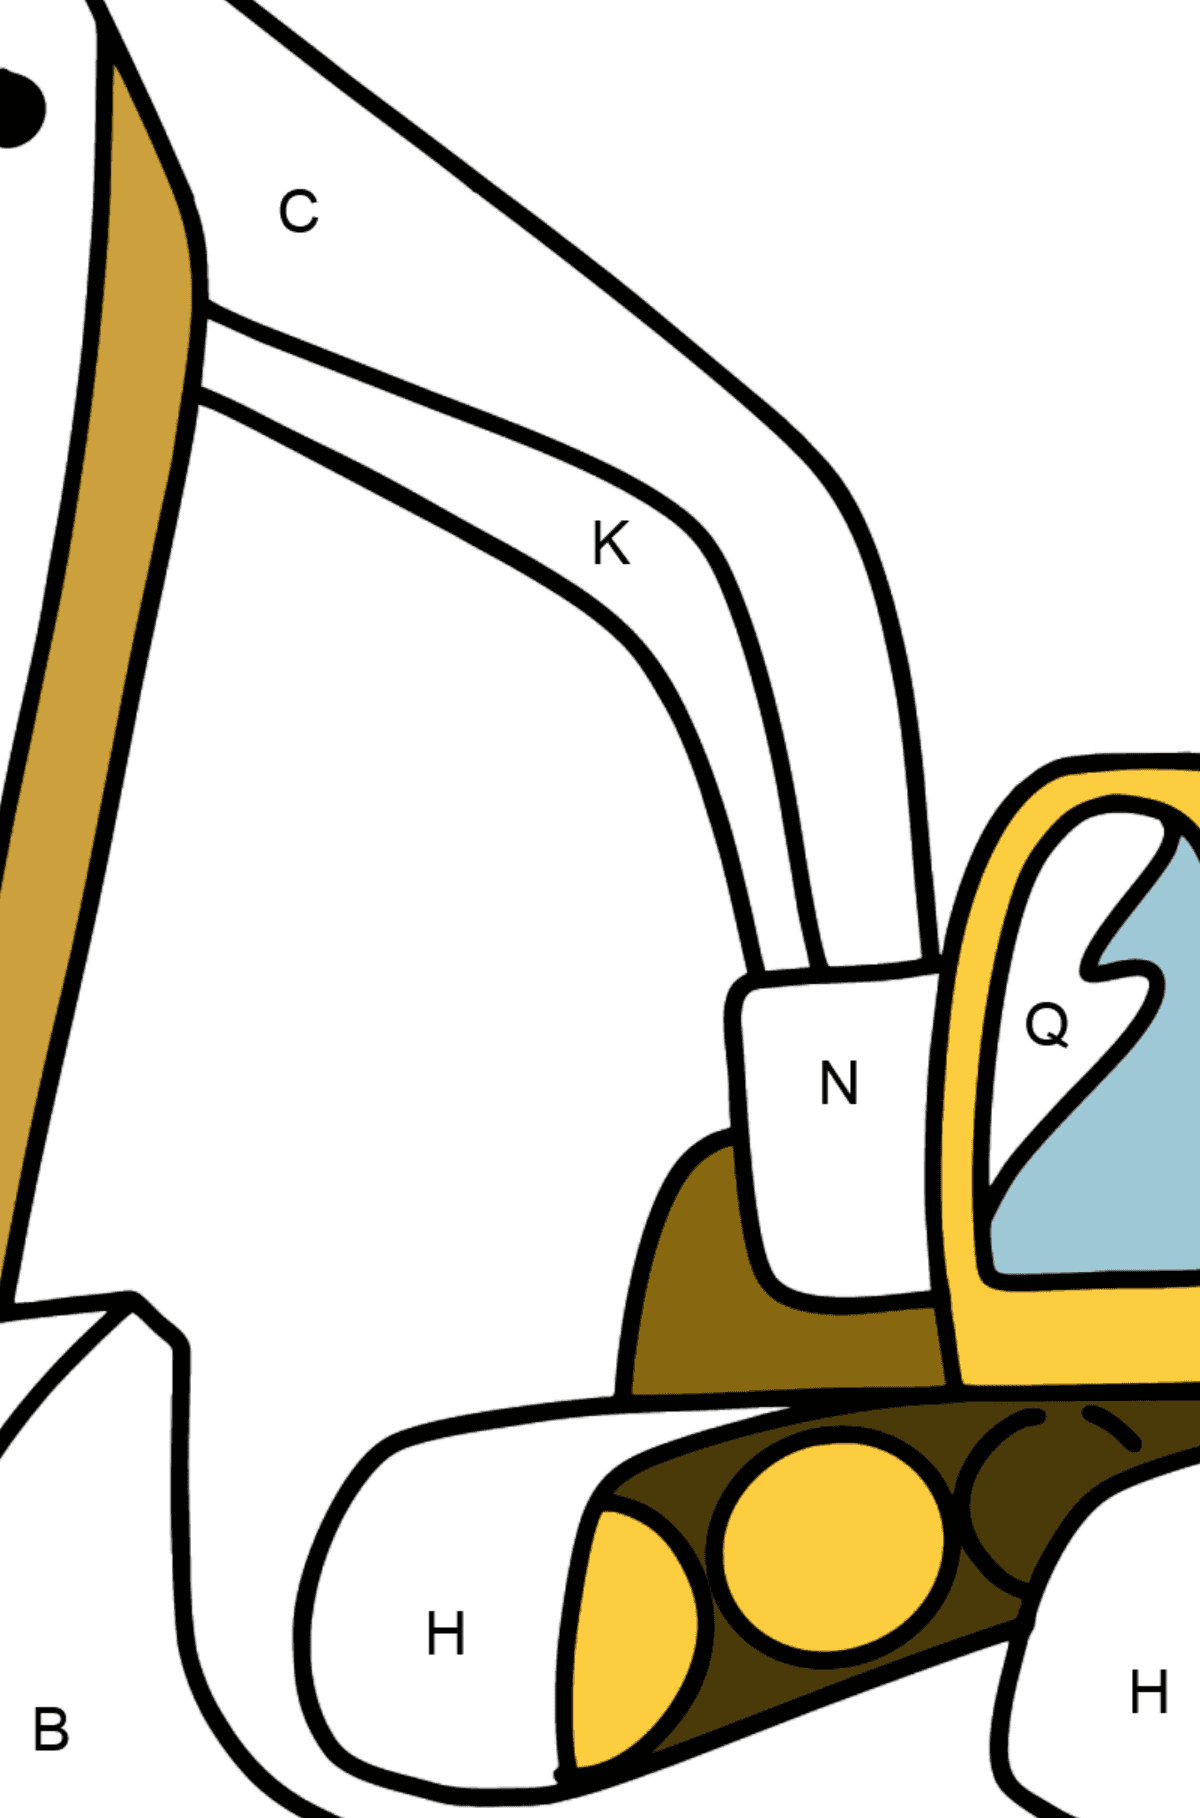 Tractor Excavator coloring page - Coloring by Letters for Kids